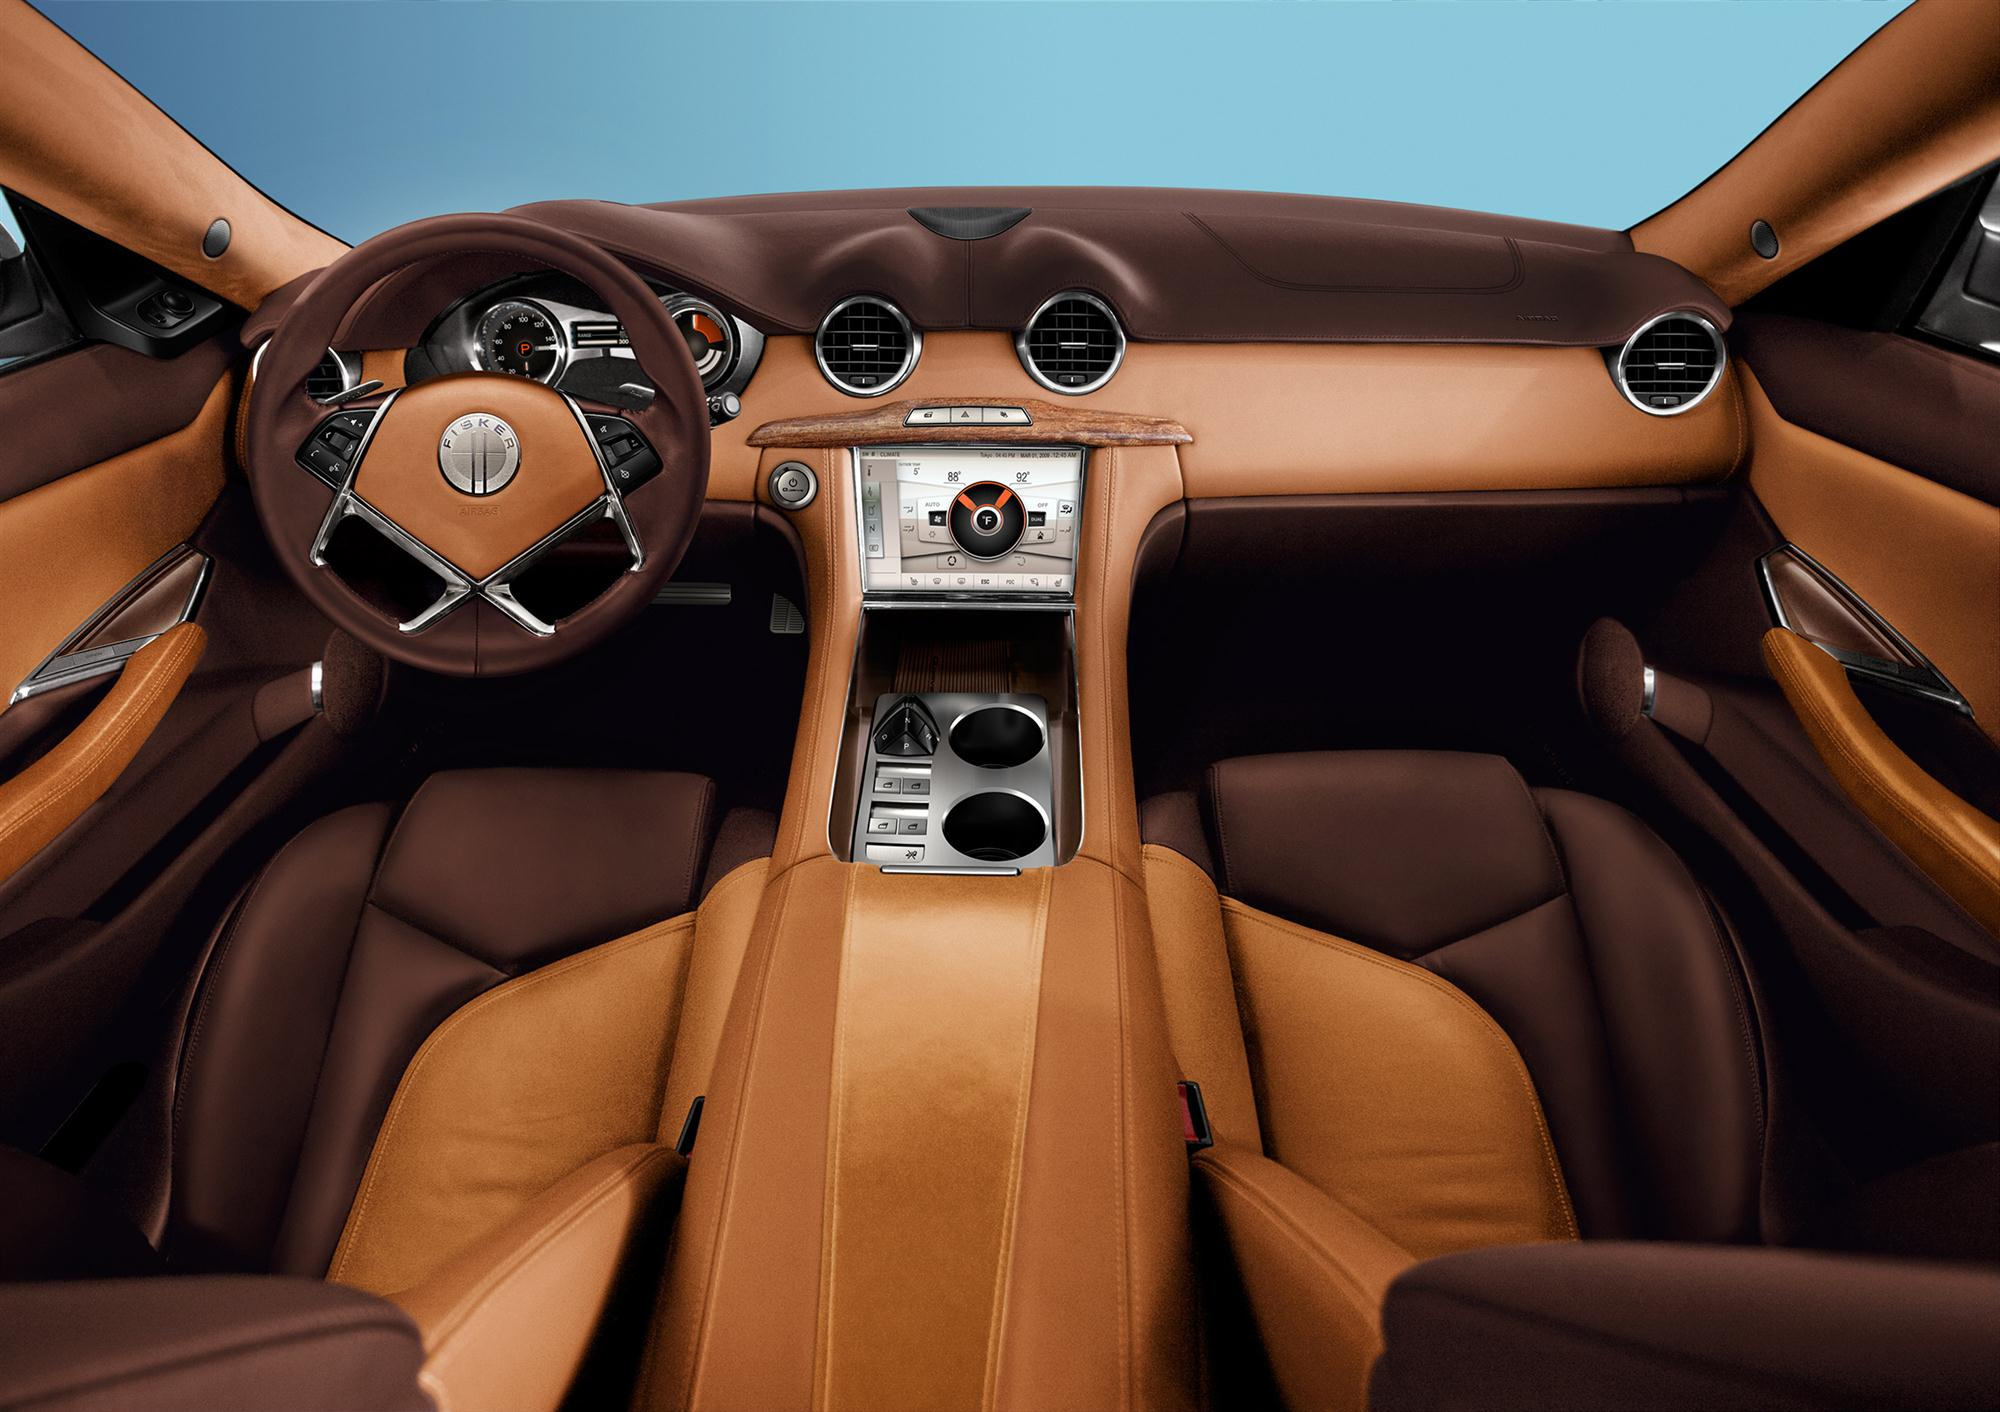 No Bull With Fisker Karma's Low Carbon, Sustainable Leather